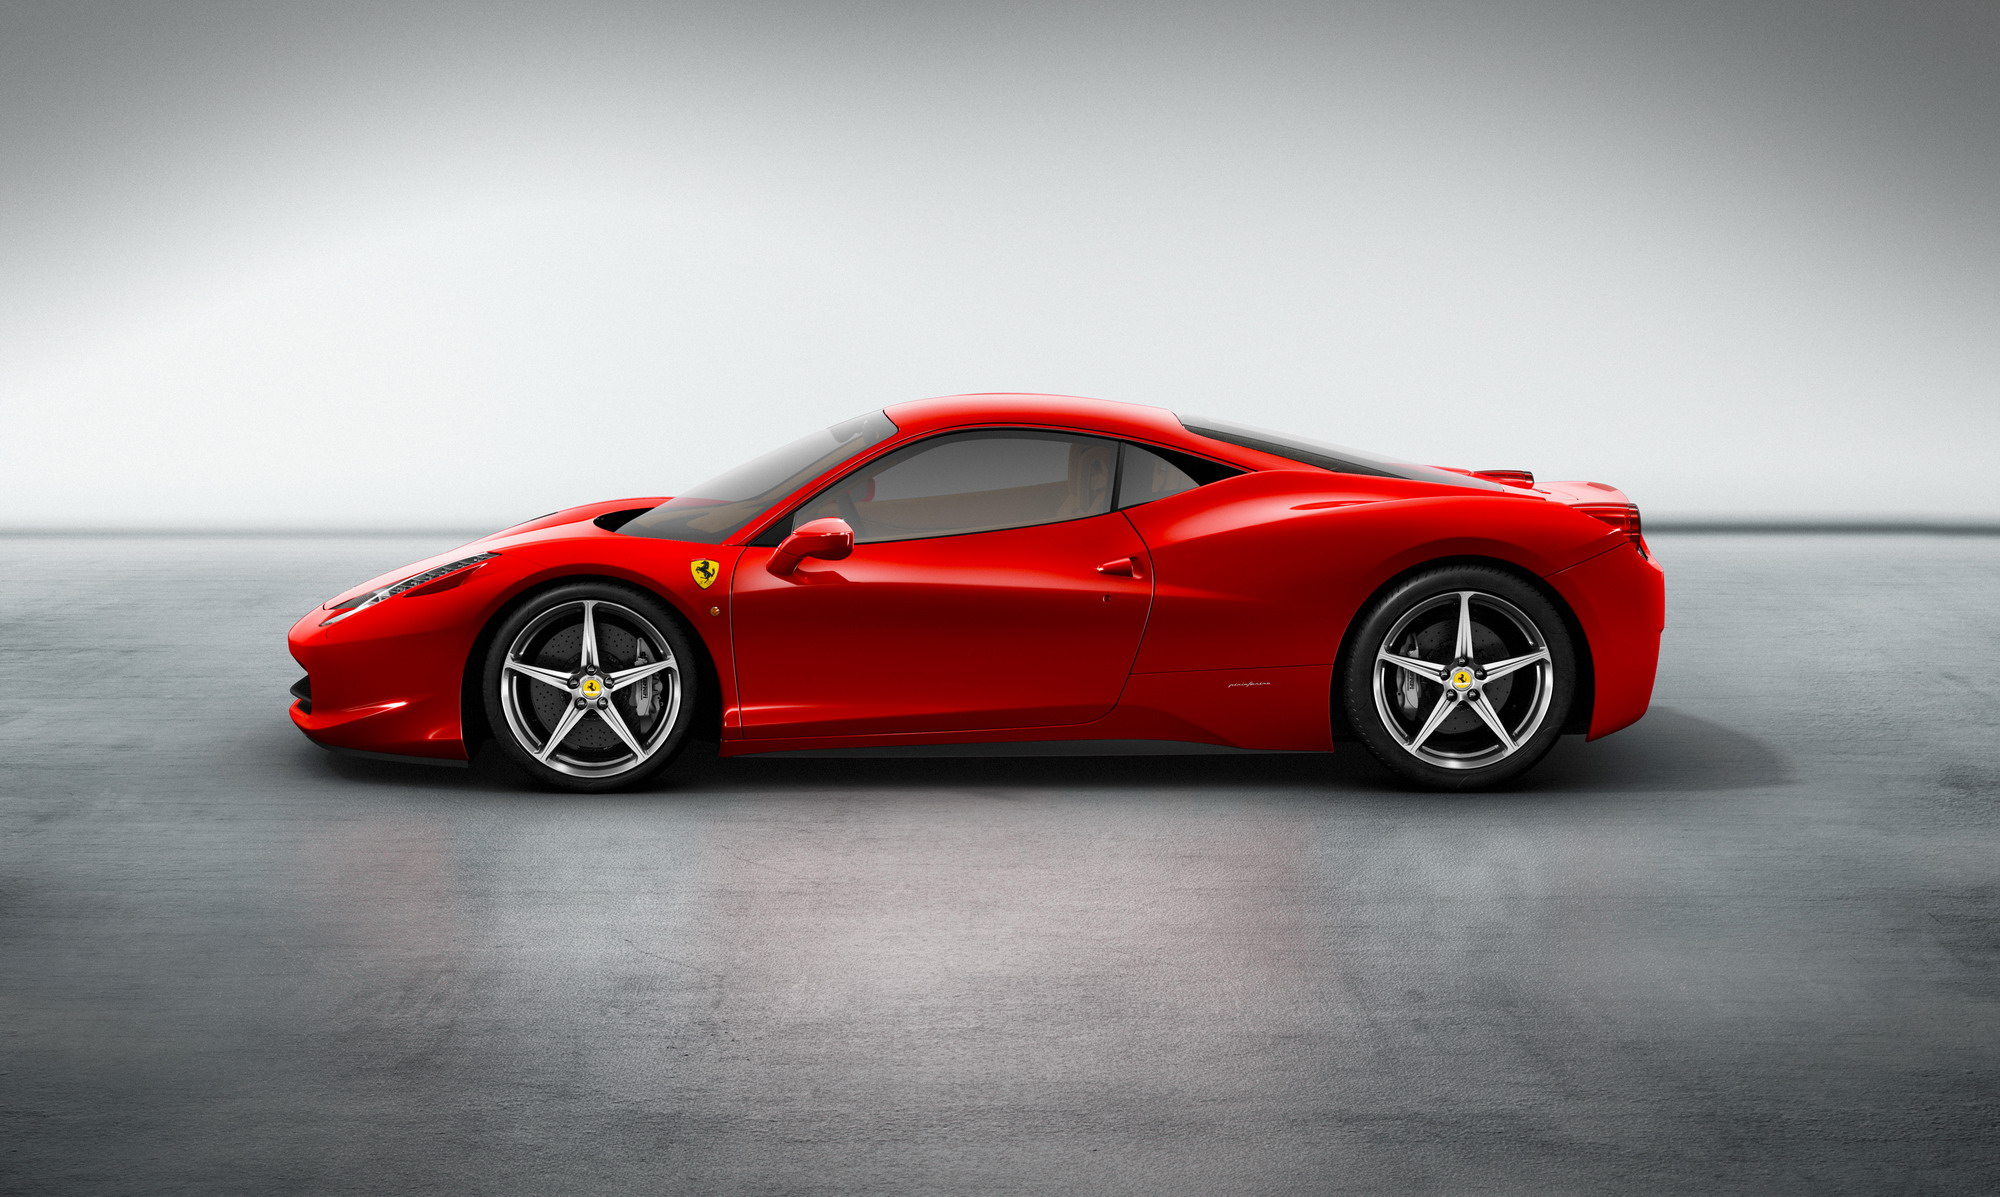 2010 ferrari 458 italia review top speed ferrari has officially unveiled the 458 italia the long awaited successor for the mid engine ferrari f430 and the design is leaving our editorial staff vanachro Images